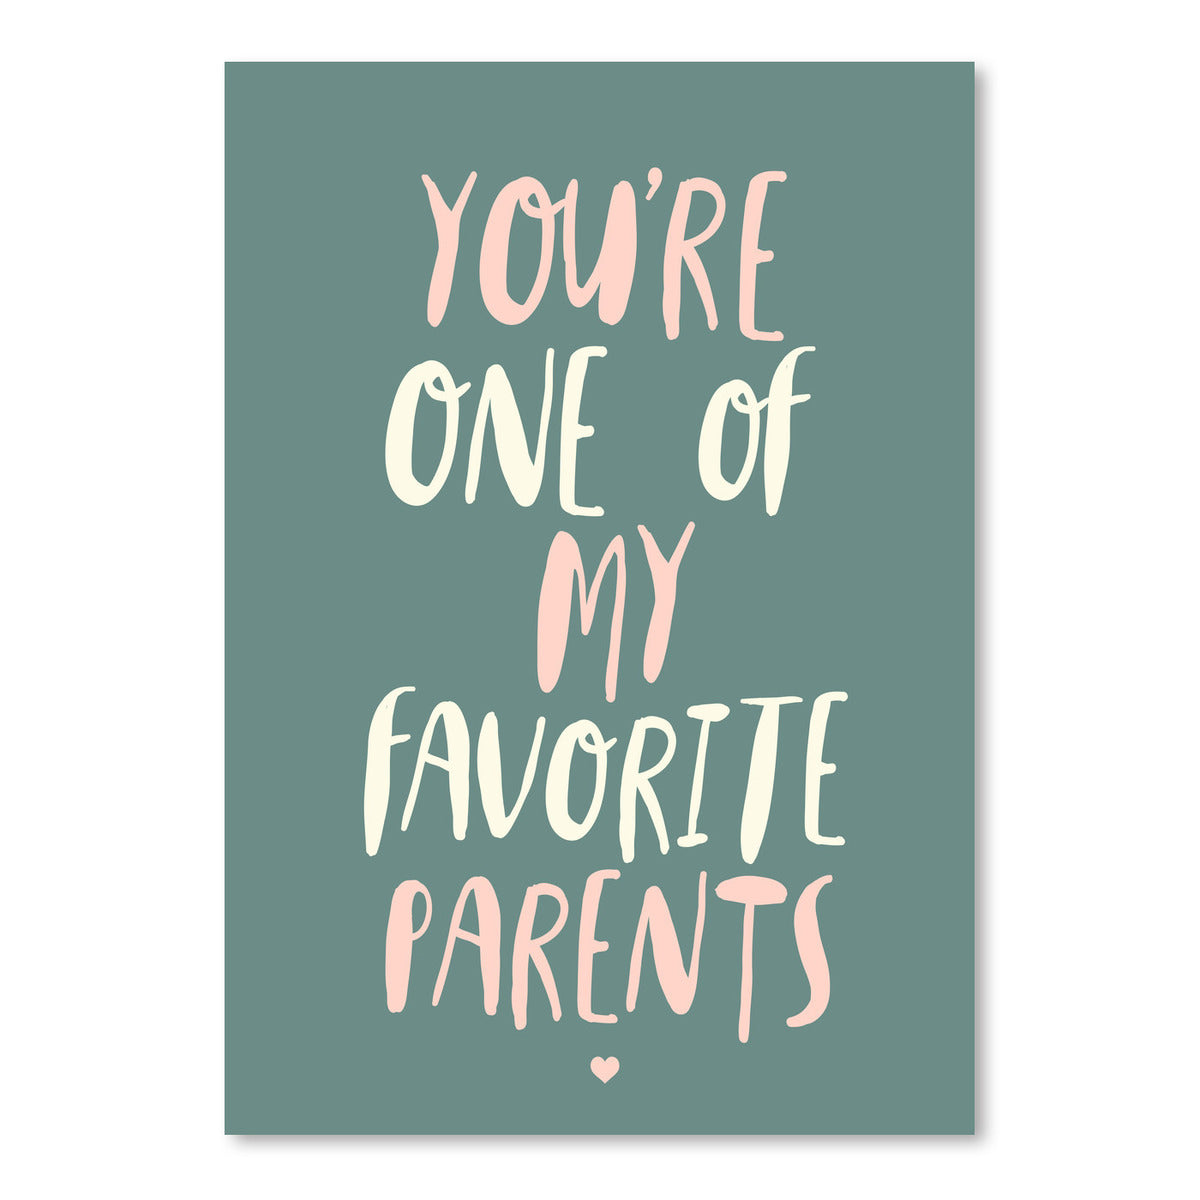 YouRe One Of My Favorite Parents by Motivated Type, Art Print, Motivated Type